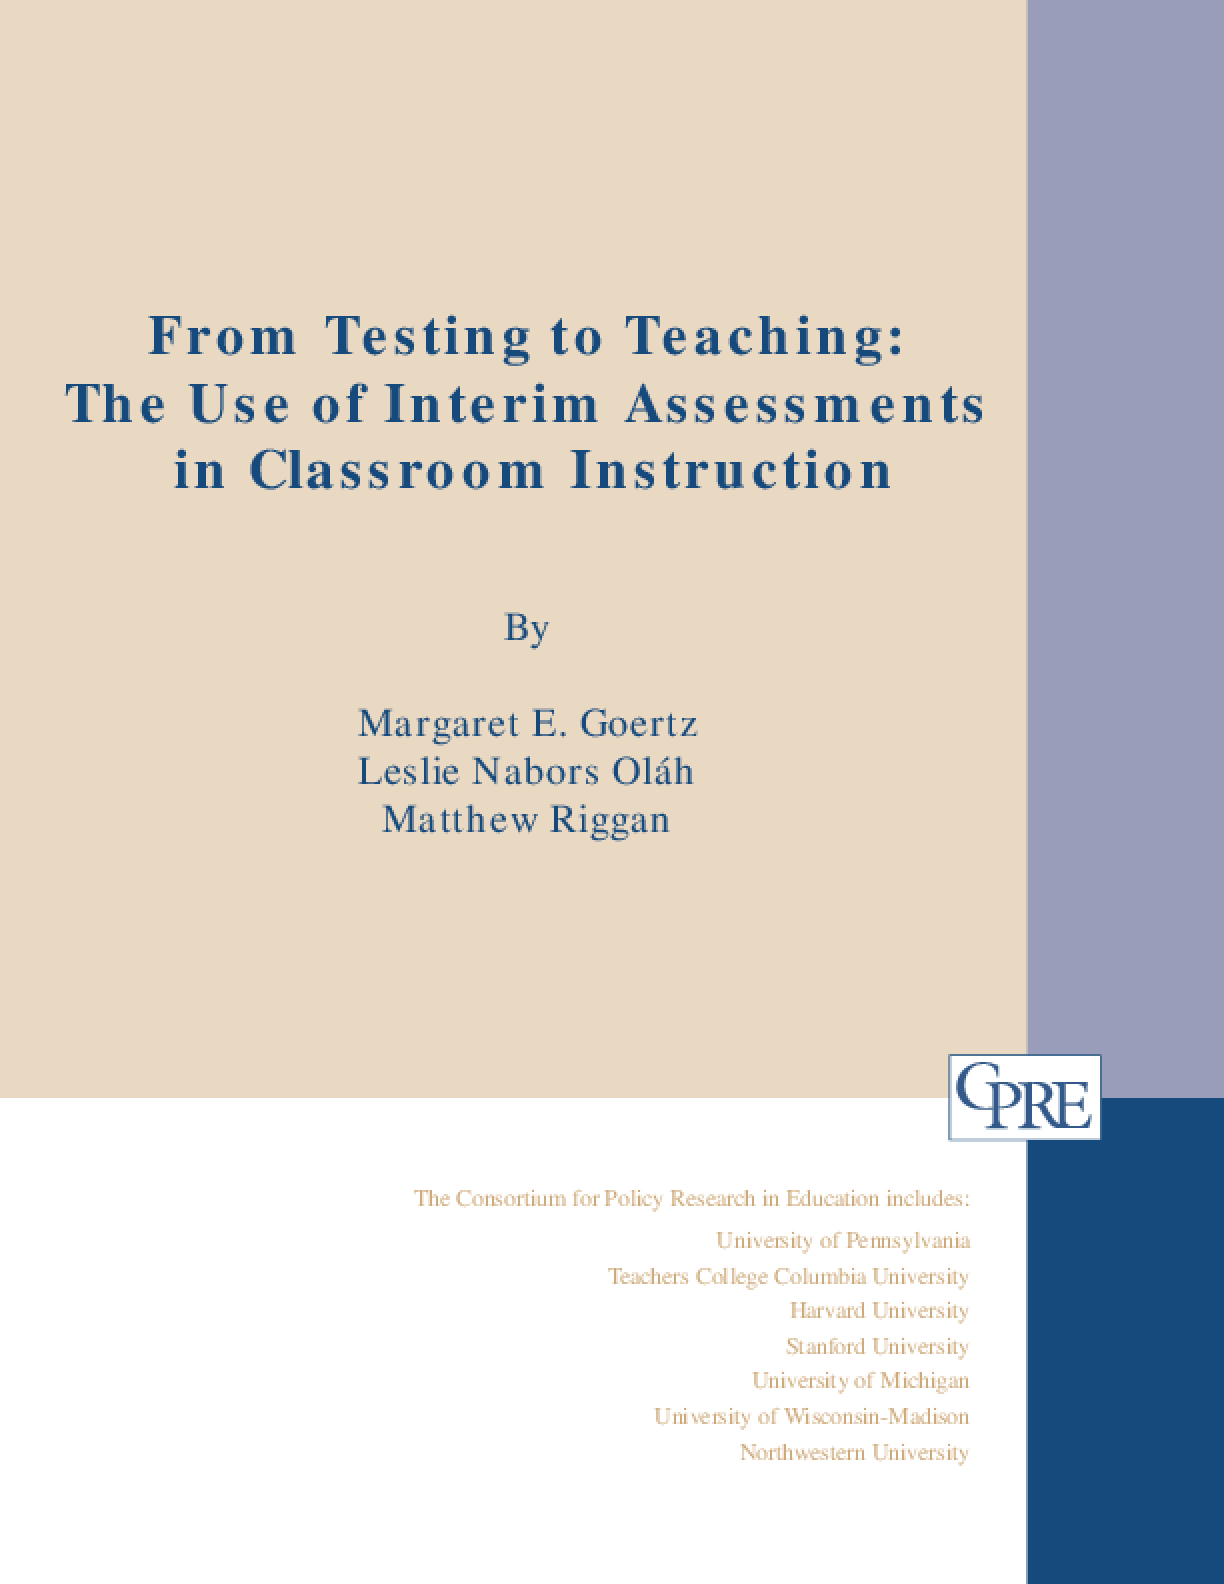 From Testing to Teaching: The Use of Interim Assessments in Classroom Instruction